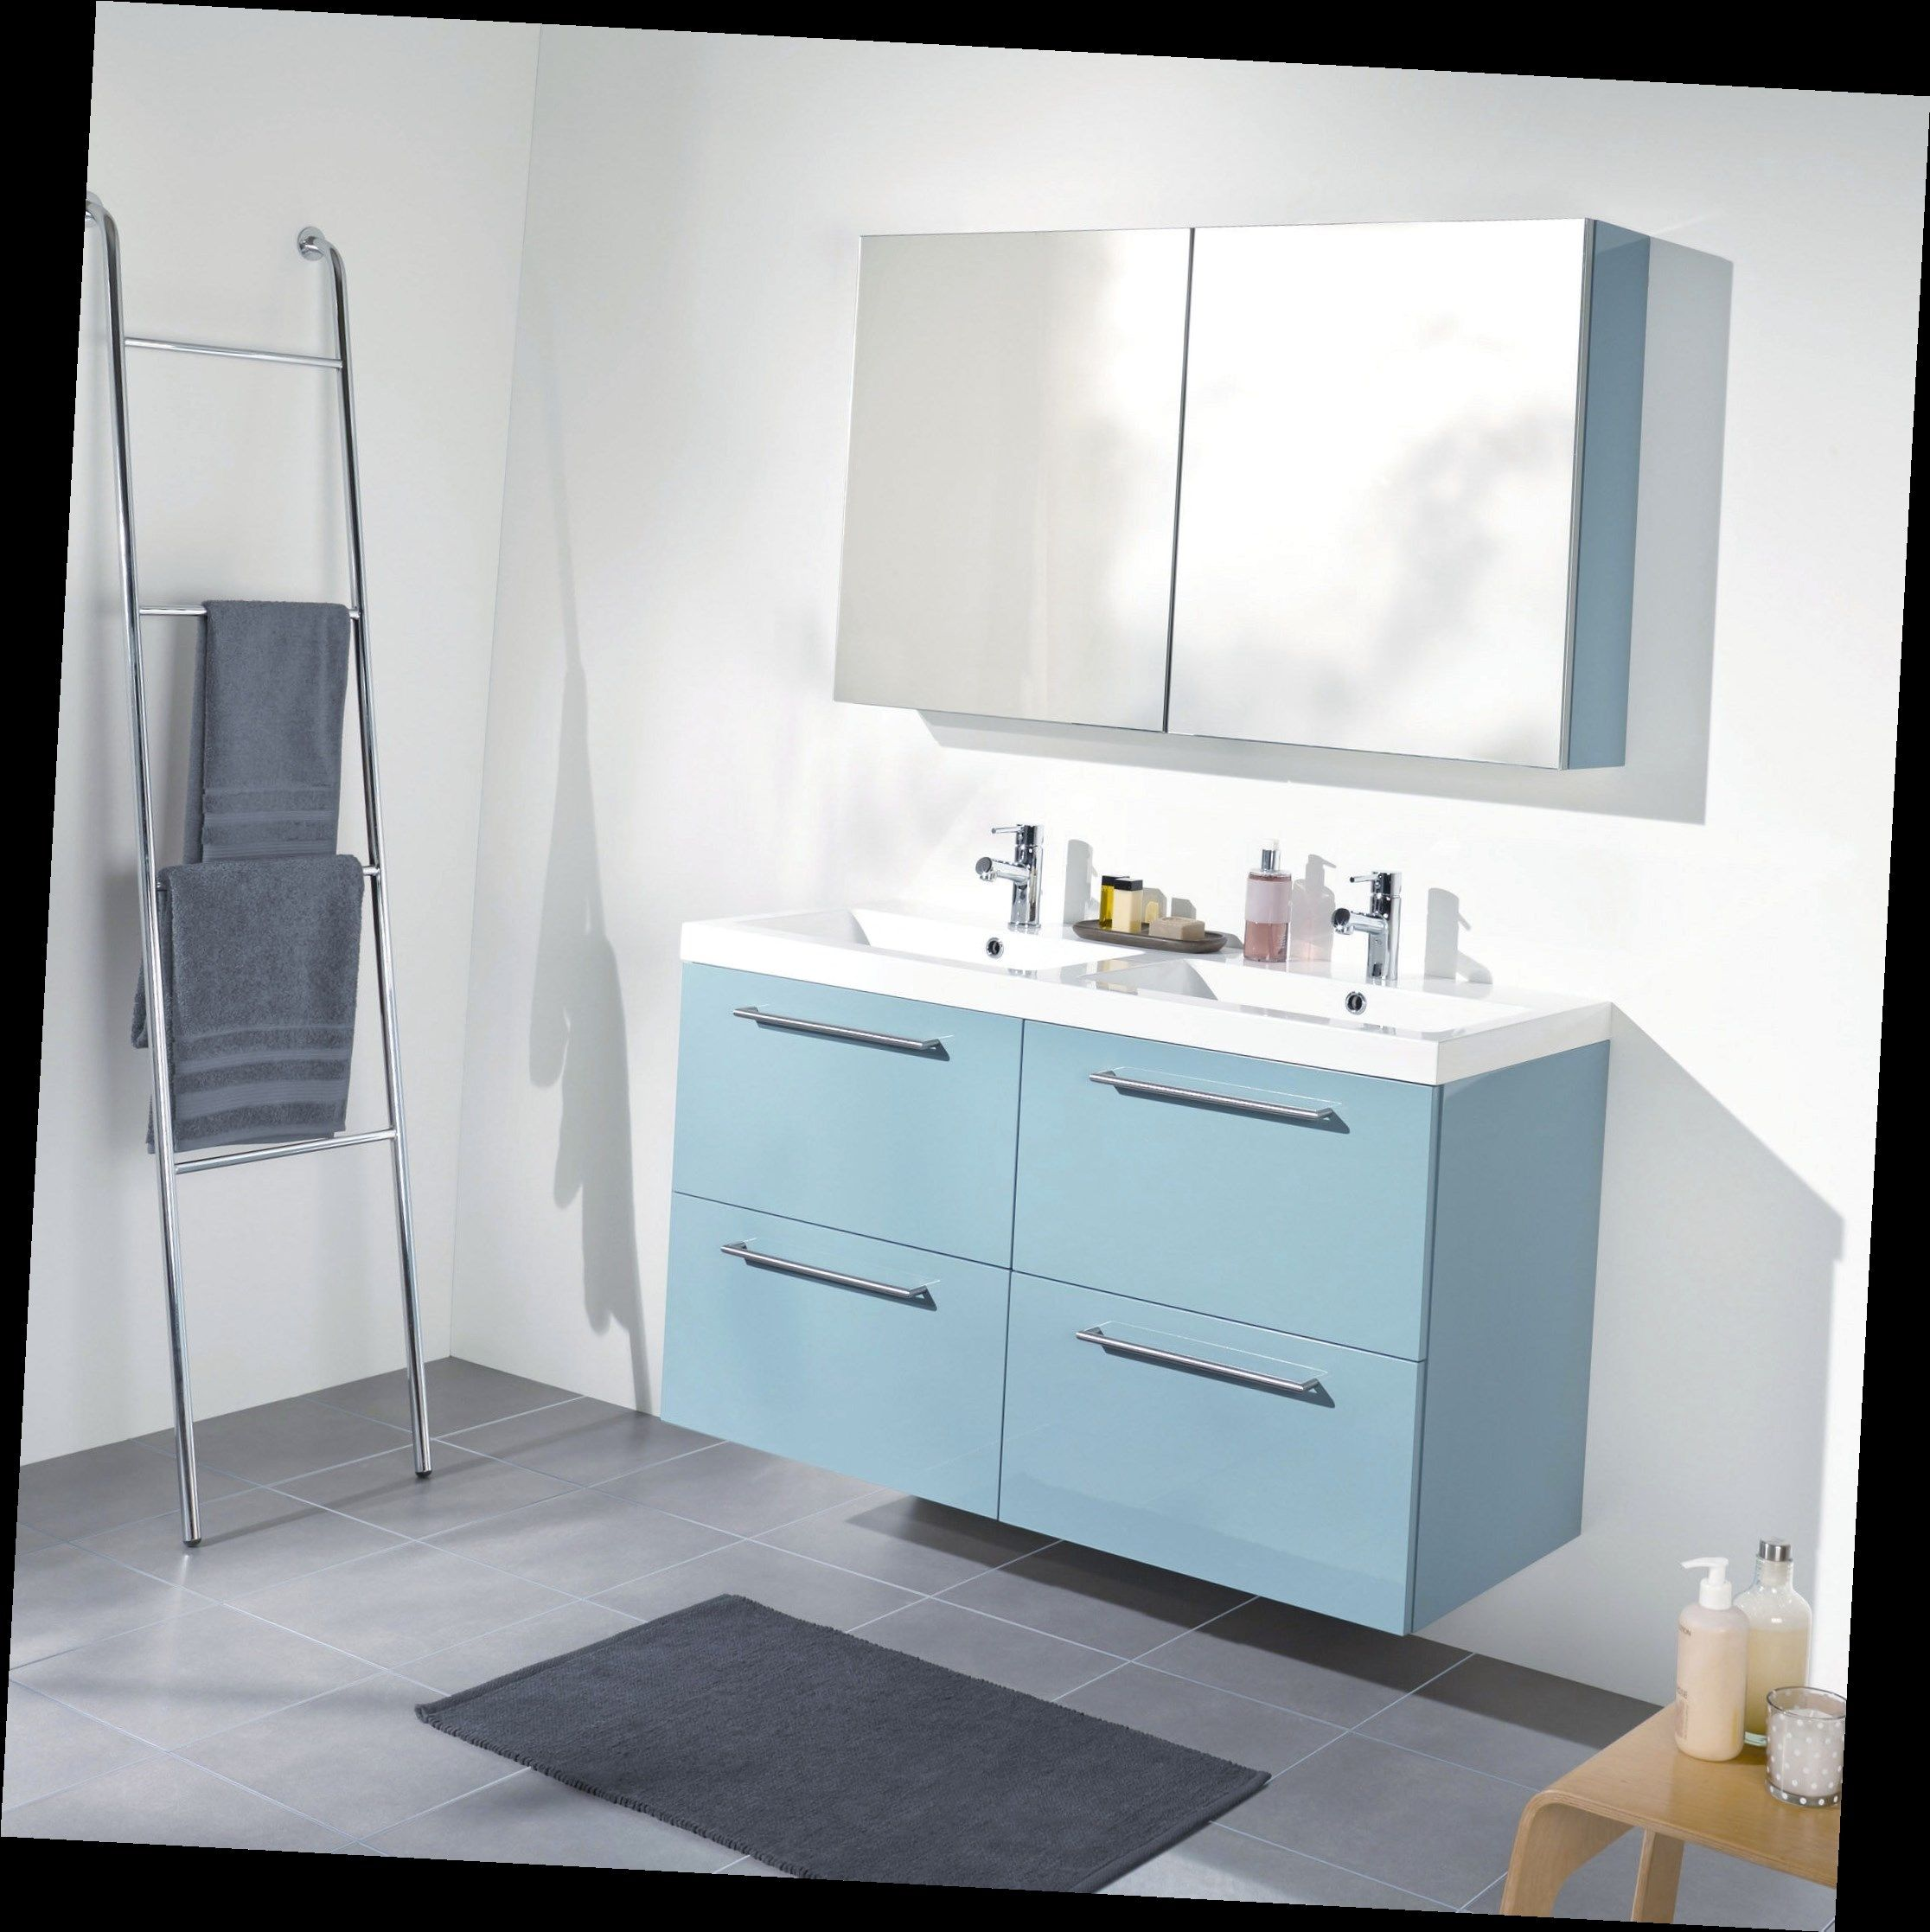 Plan De Travail Salle De Bain Brico Depot Brico Depot Salle Travail Volumessalledebain Salledeb Bathroom Vanity Double Vanity Woodworking Projects Plans